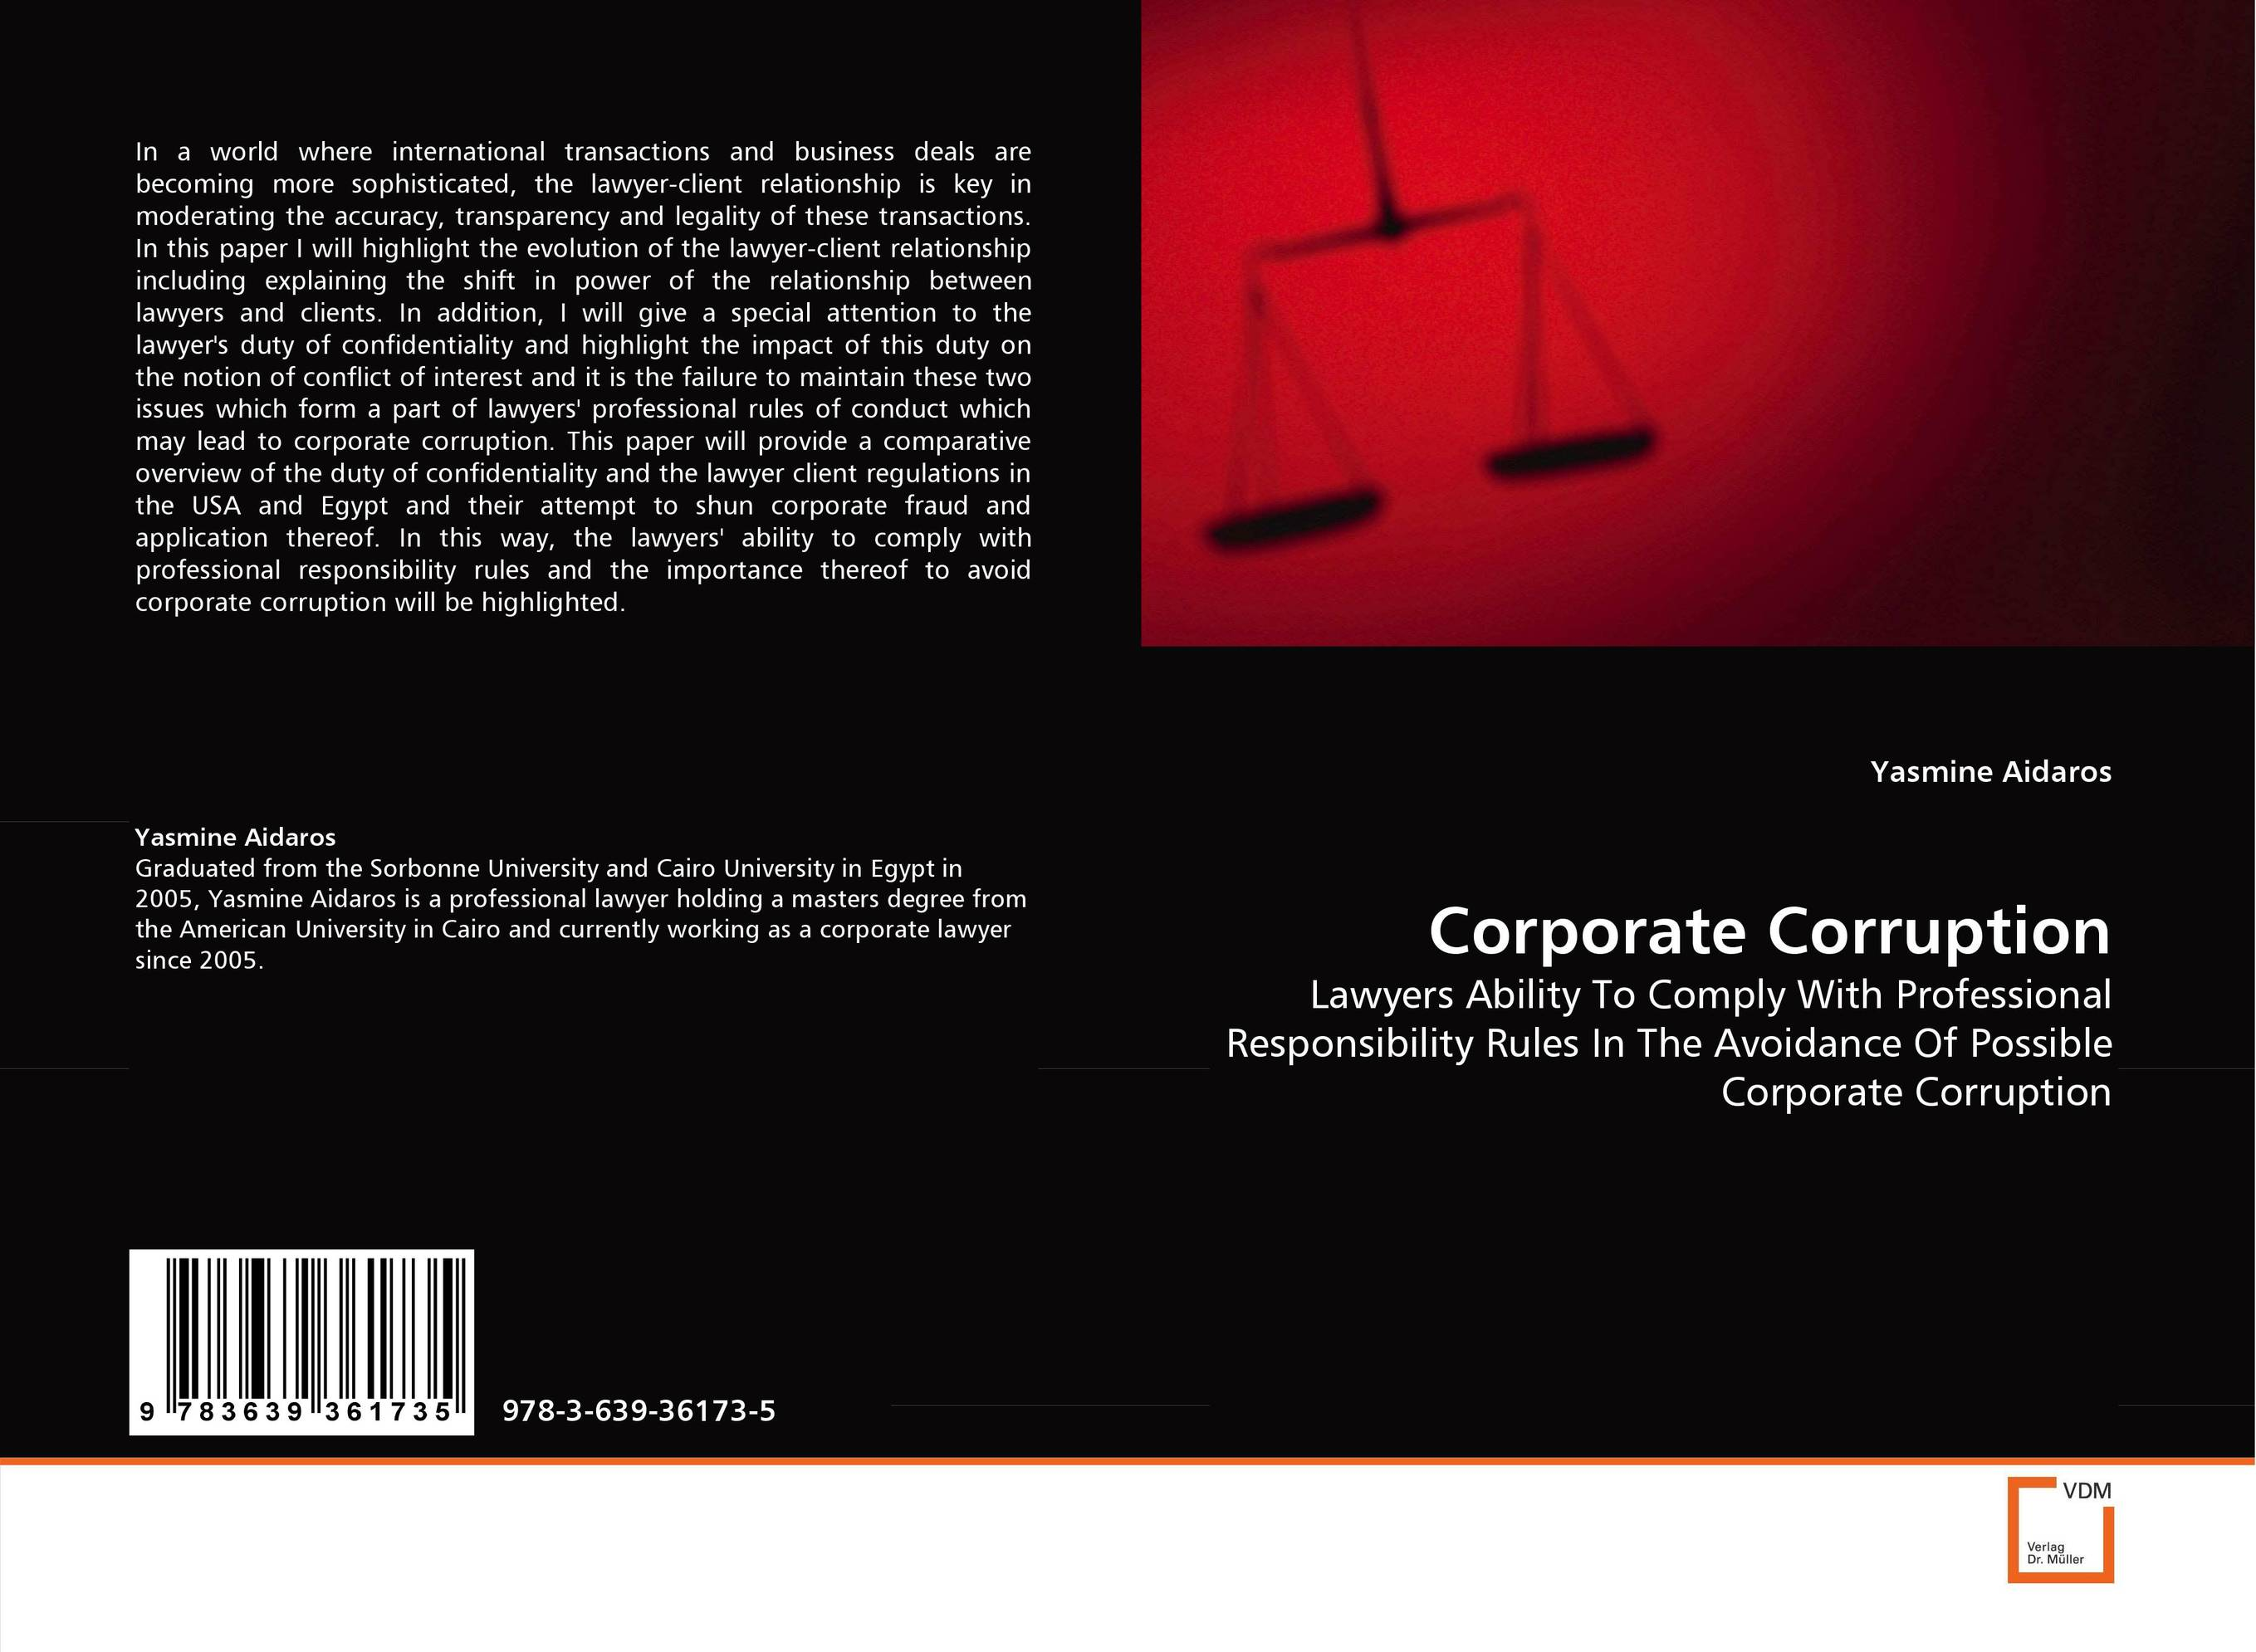 Corporate Corruption toby bishop j corporate resiliency managing the growing risk of fraud and corruption